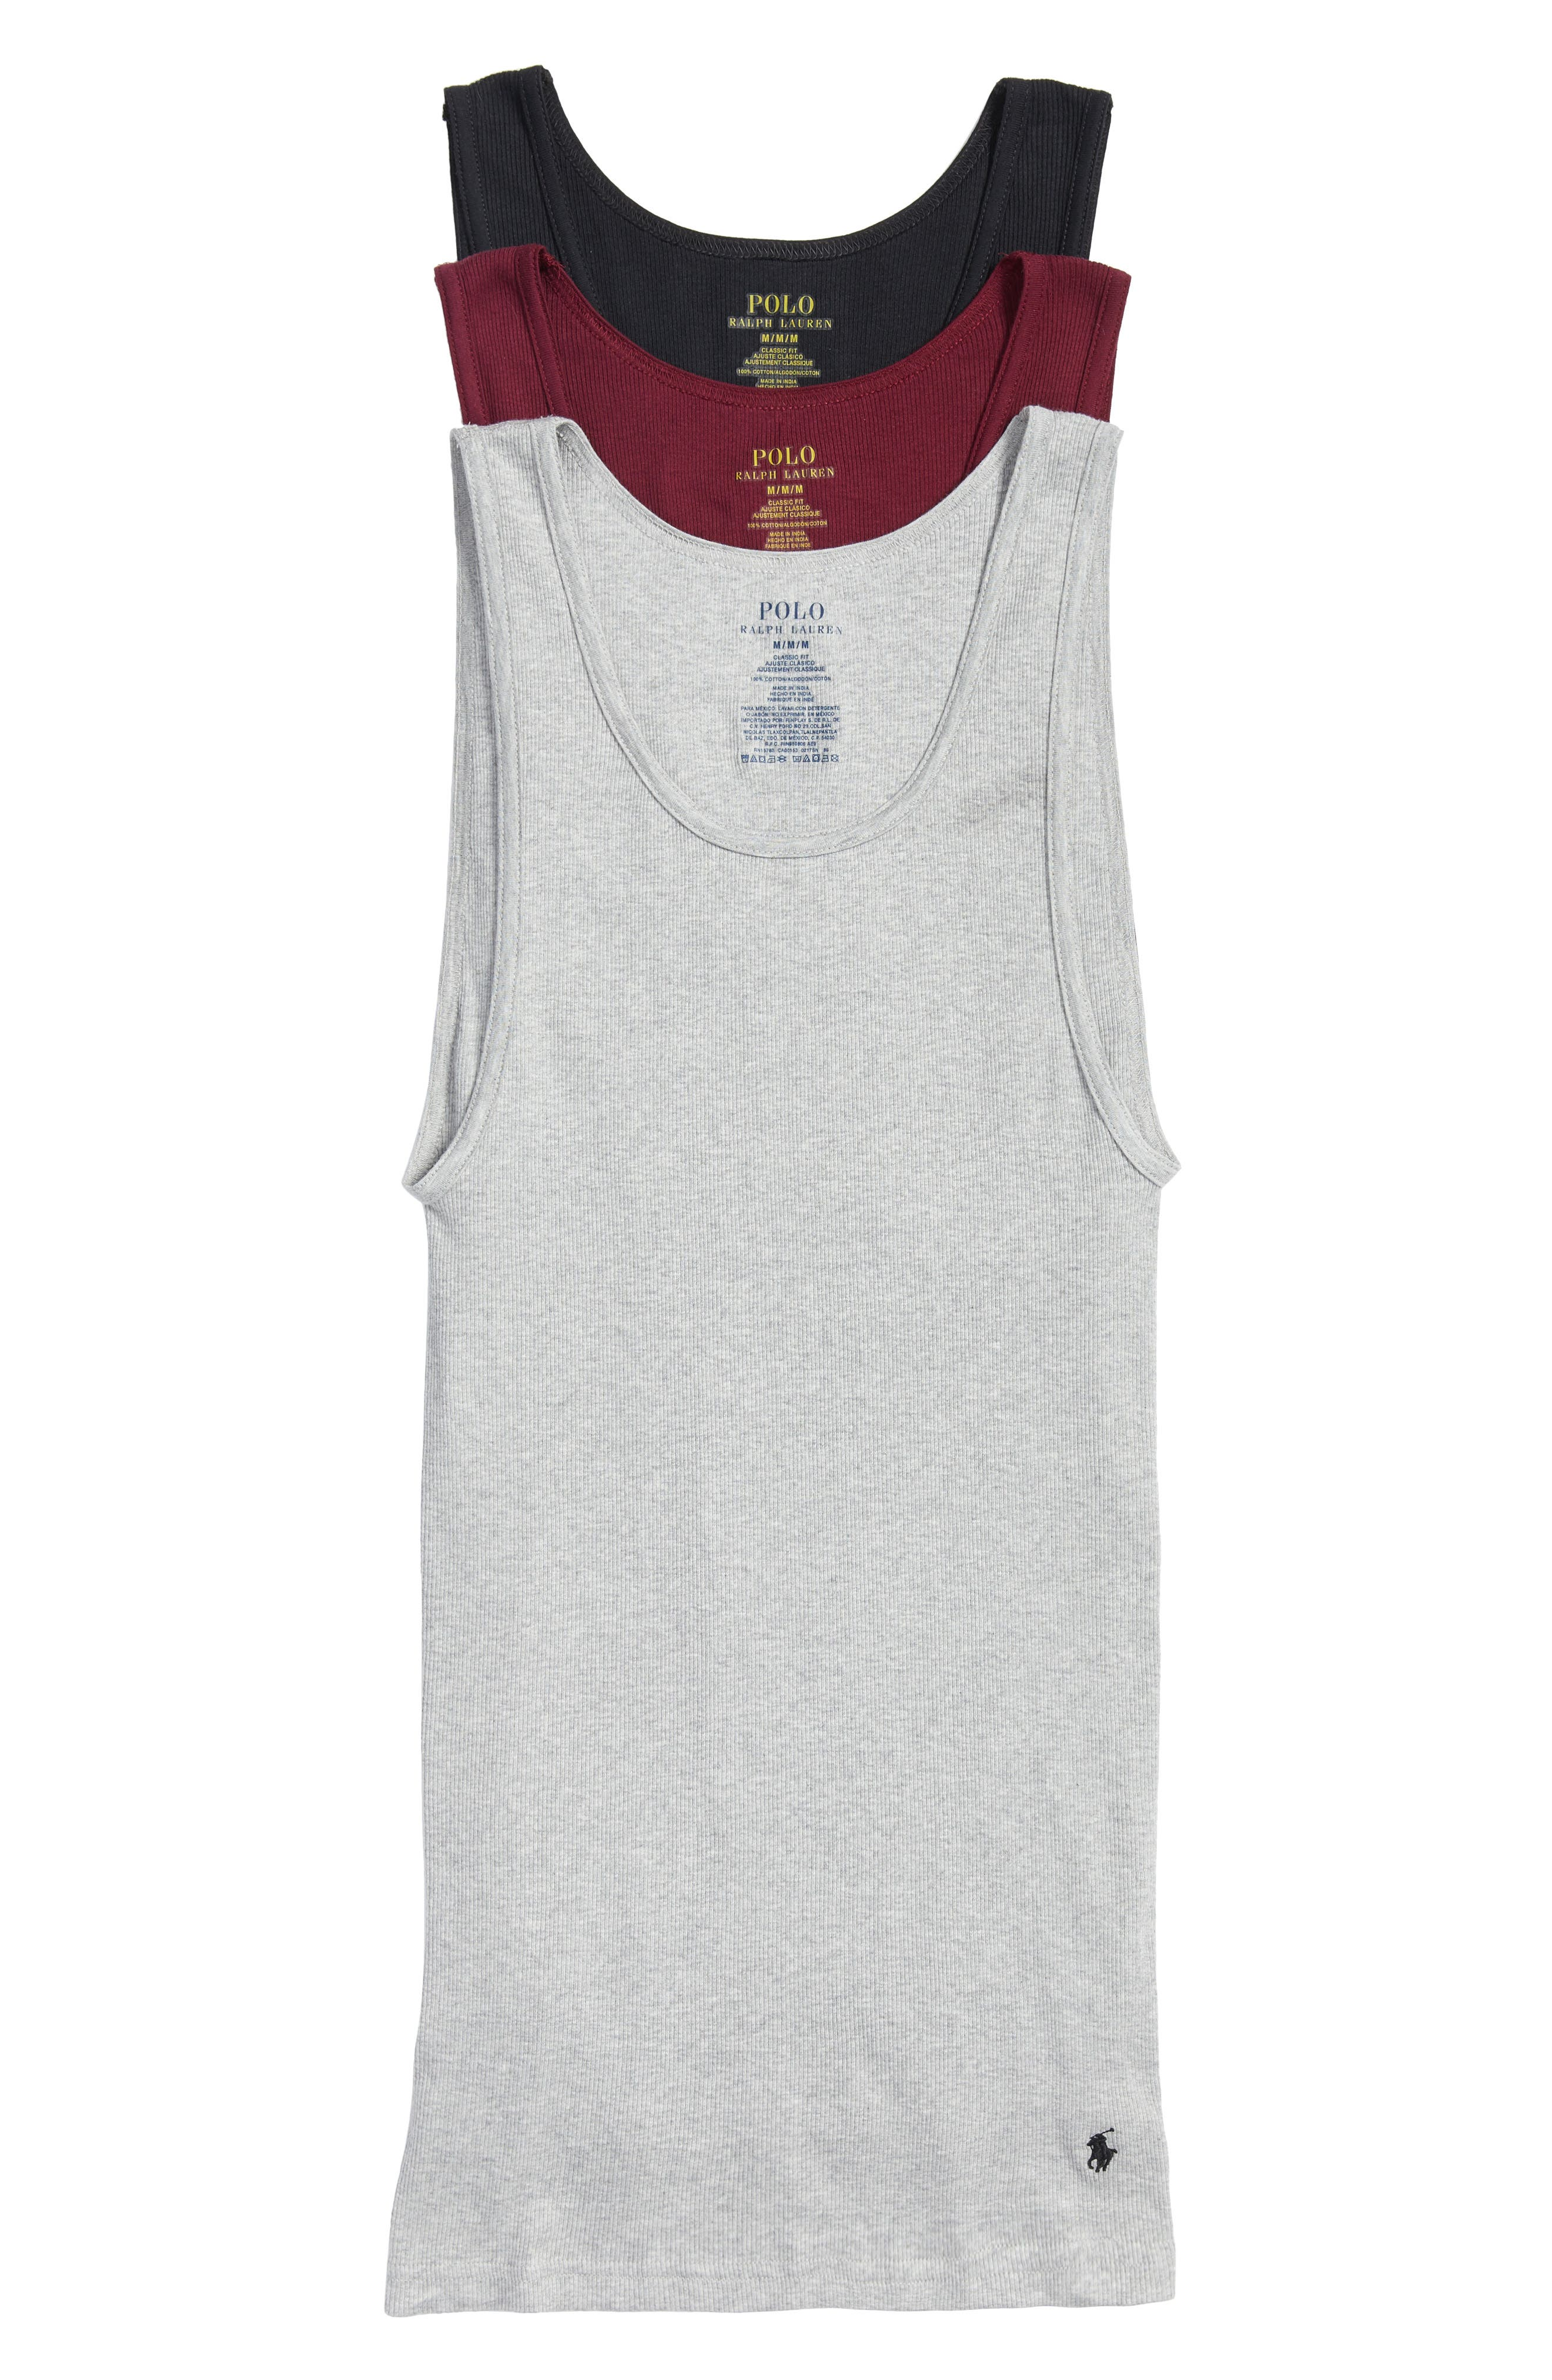 Ralph Lauren 3-Pack Classic Ribbed Tank Tops,                         Main,                         color, Andover Heather/ Wine/ Black